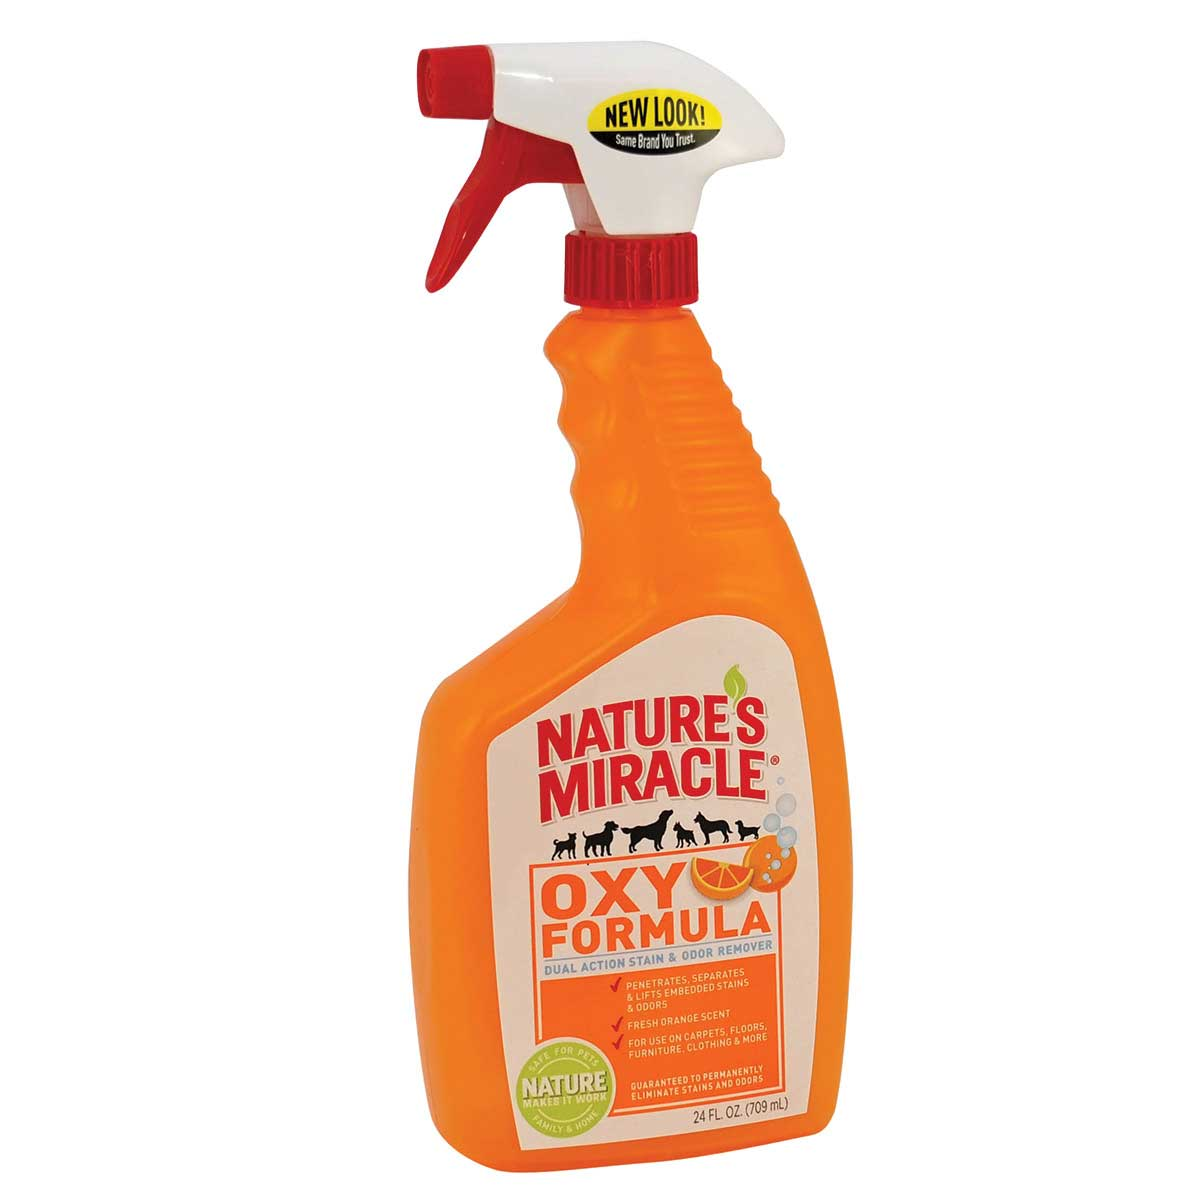 24 oz Nature's Miracle Oxy Stain & Odor Remover - Orange Scent